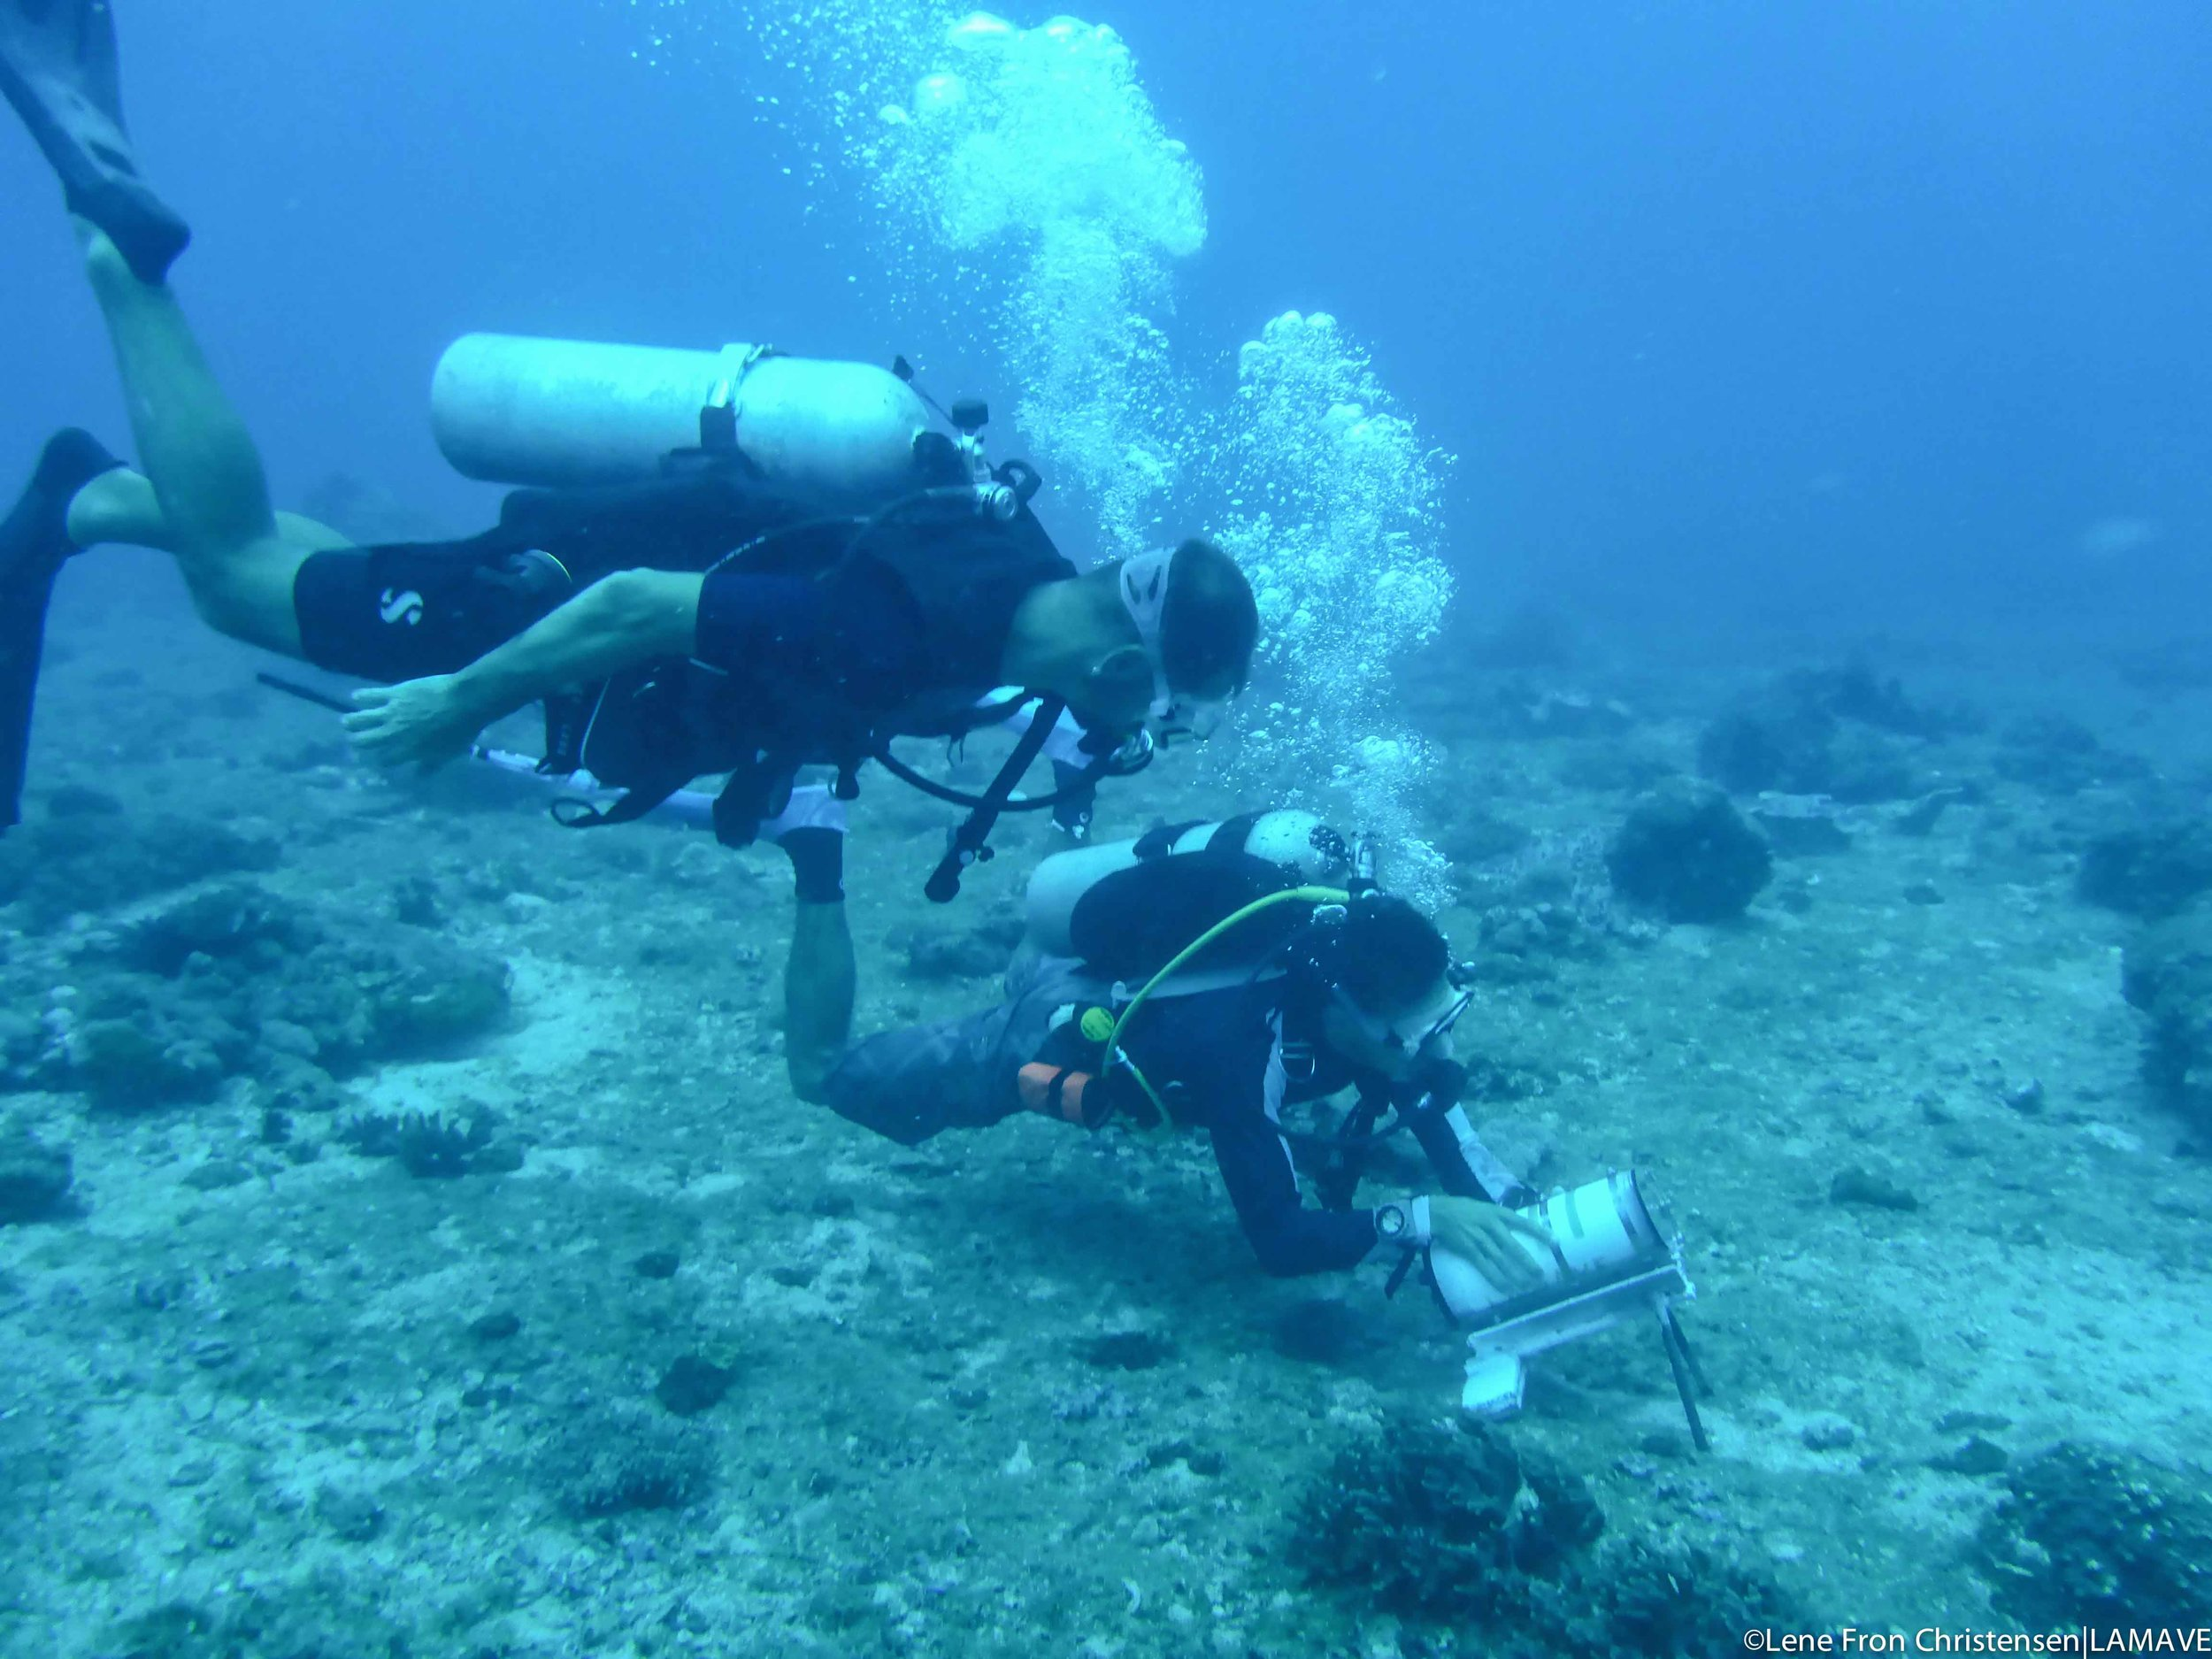 The team carefully position a Remote Underwater Video (RUV) used to record manta ray visitation to the site.